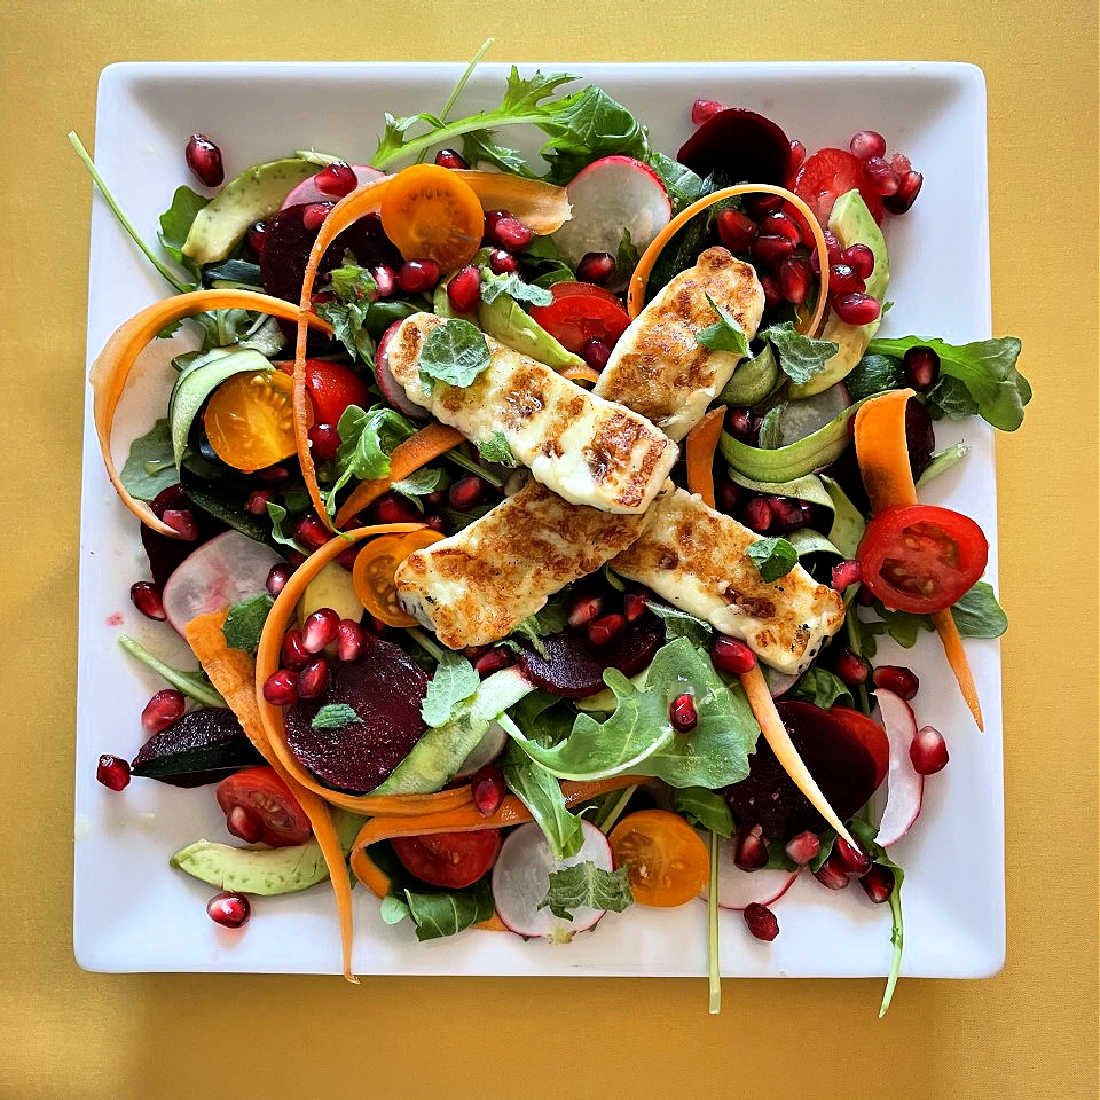 Halloumi-plate-low-resW9r04UvY7xFt6